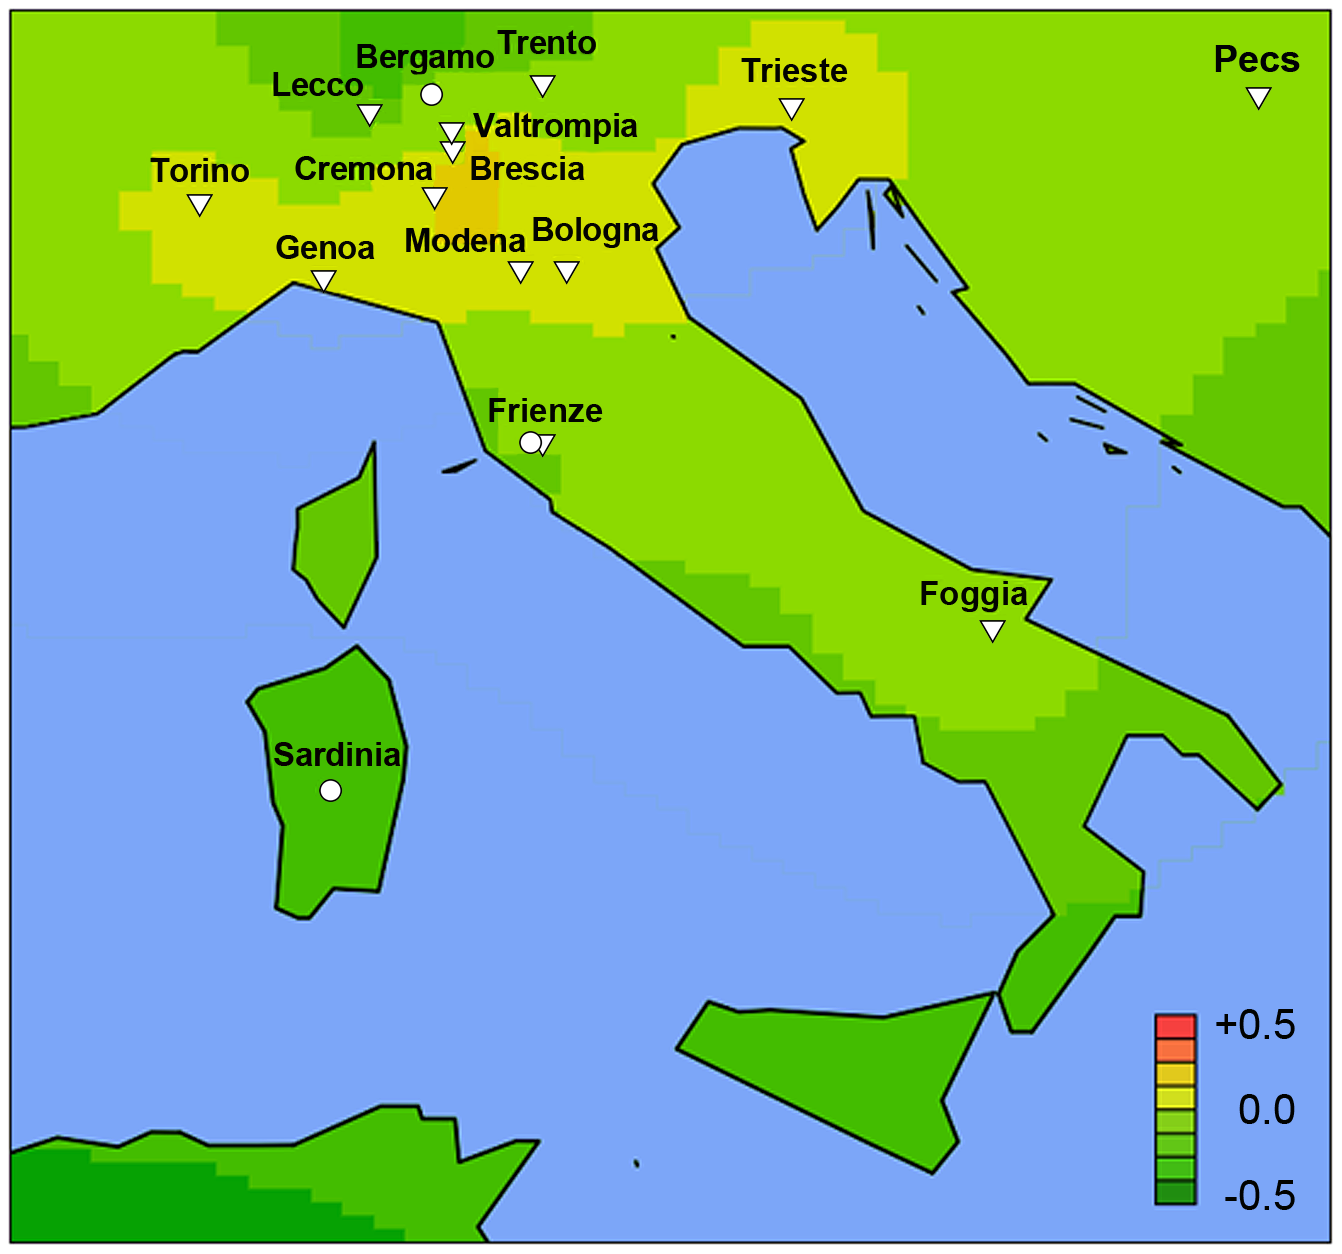 High-resolution geospatial risk analysis for Italy.